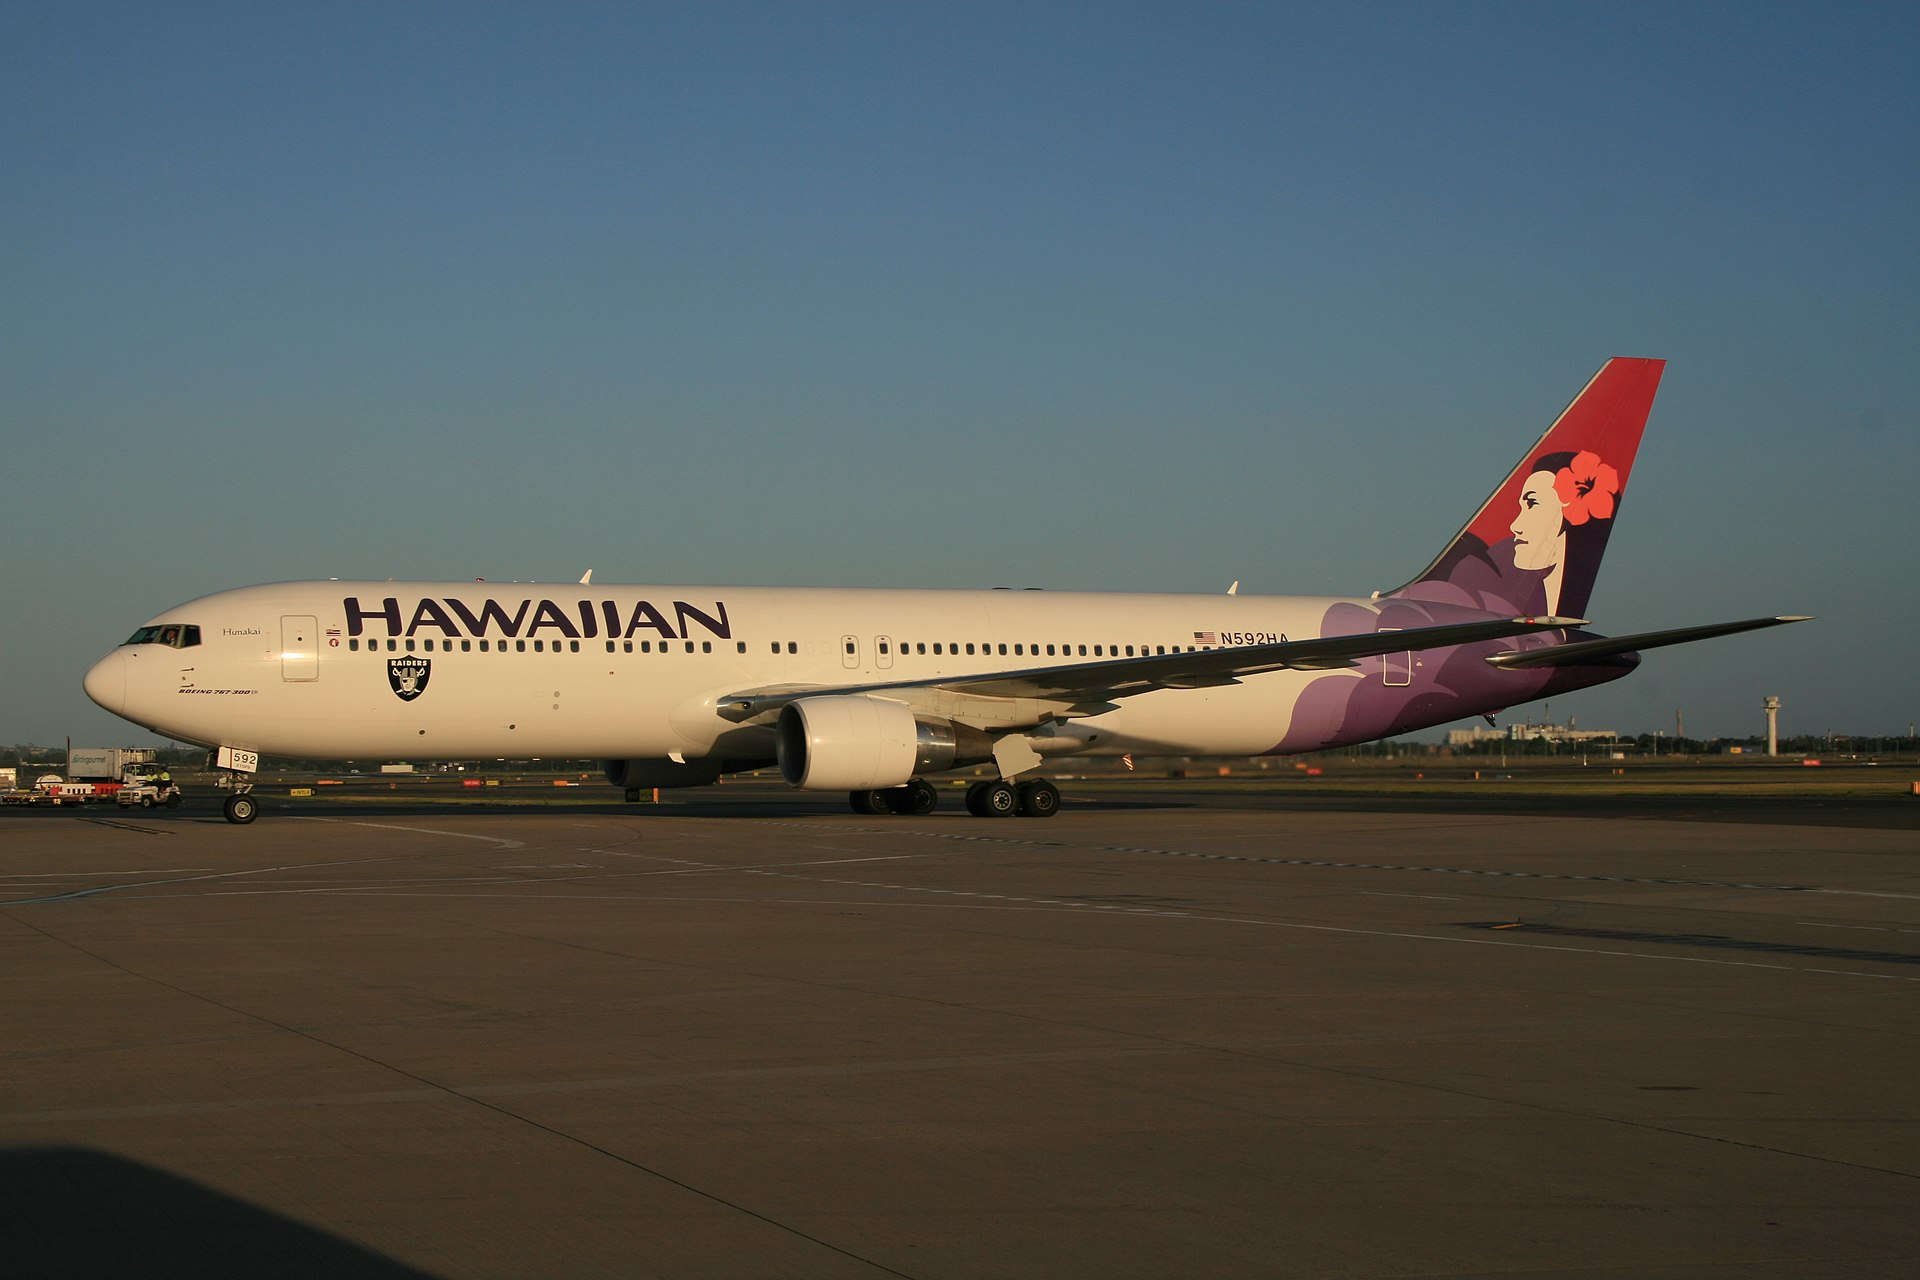 """A white twin-engine plane painted with the word """"HAWAIIAN"""" in the front above the windows, a black, silver, and white logo of a pirate's head on the forward bottom of the fuselage, and a woman in different purple hues on the tail taxis at an airport"""